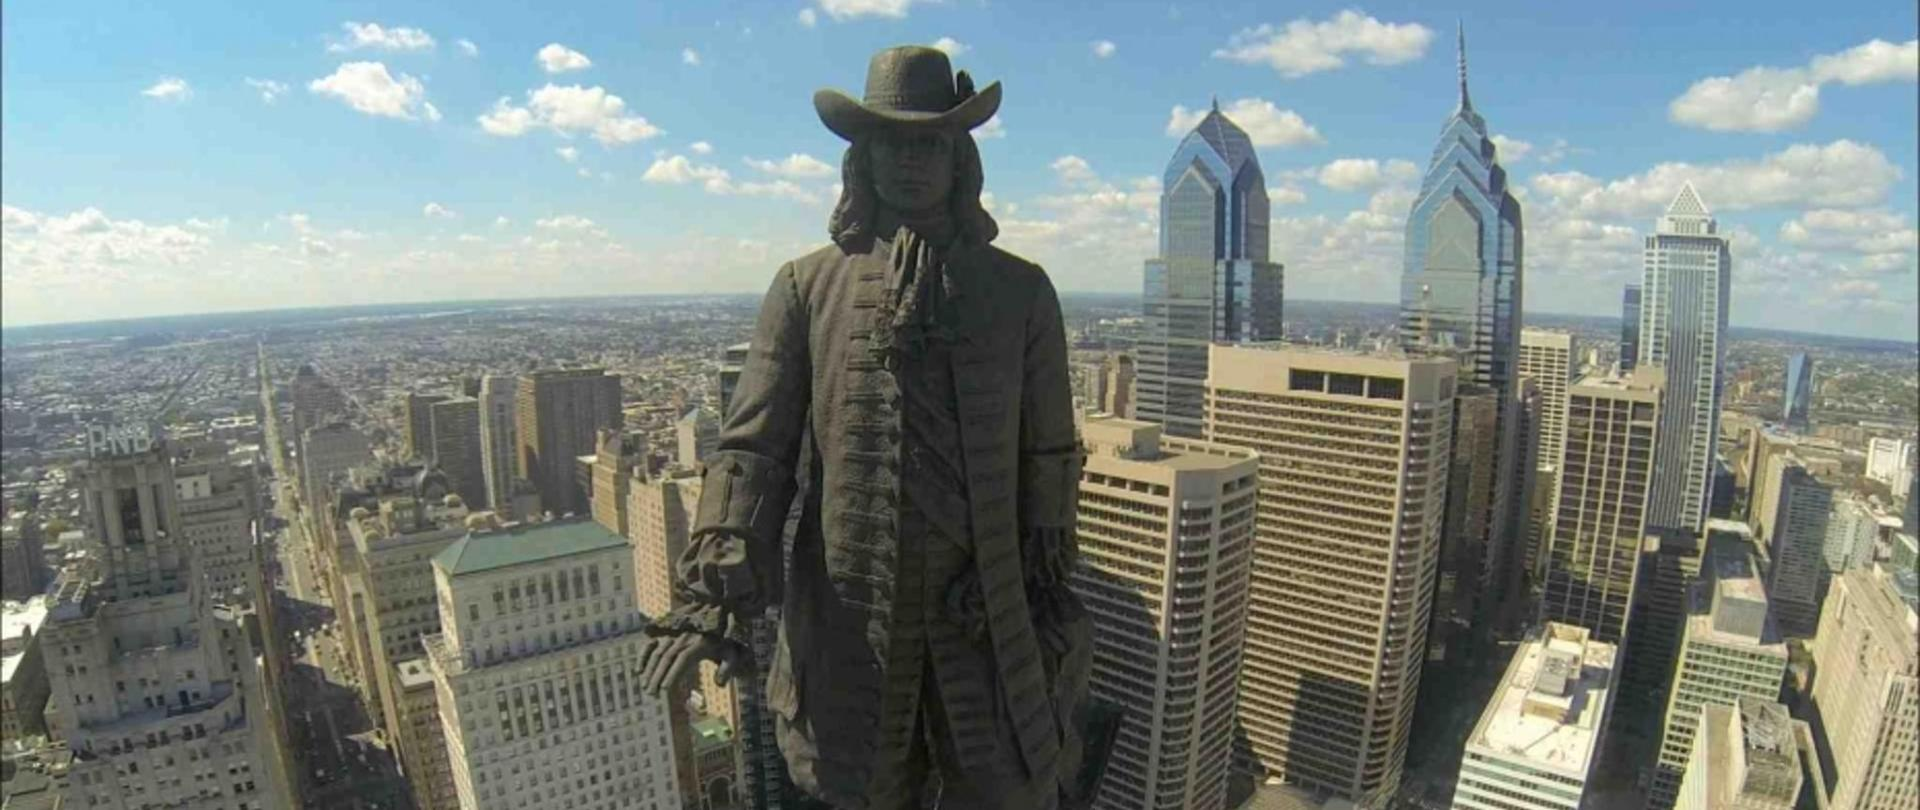 William Penn 2.jpg